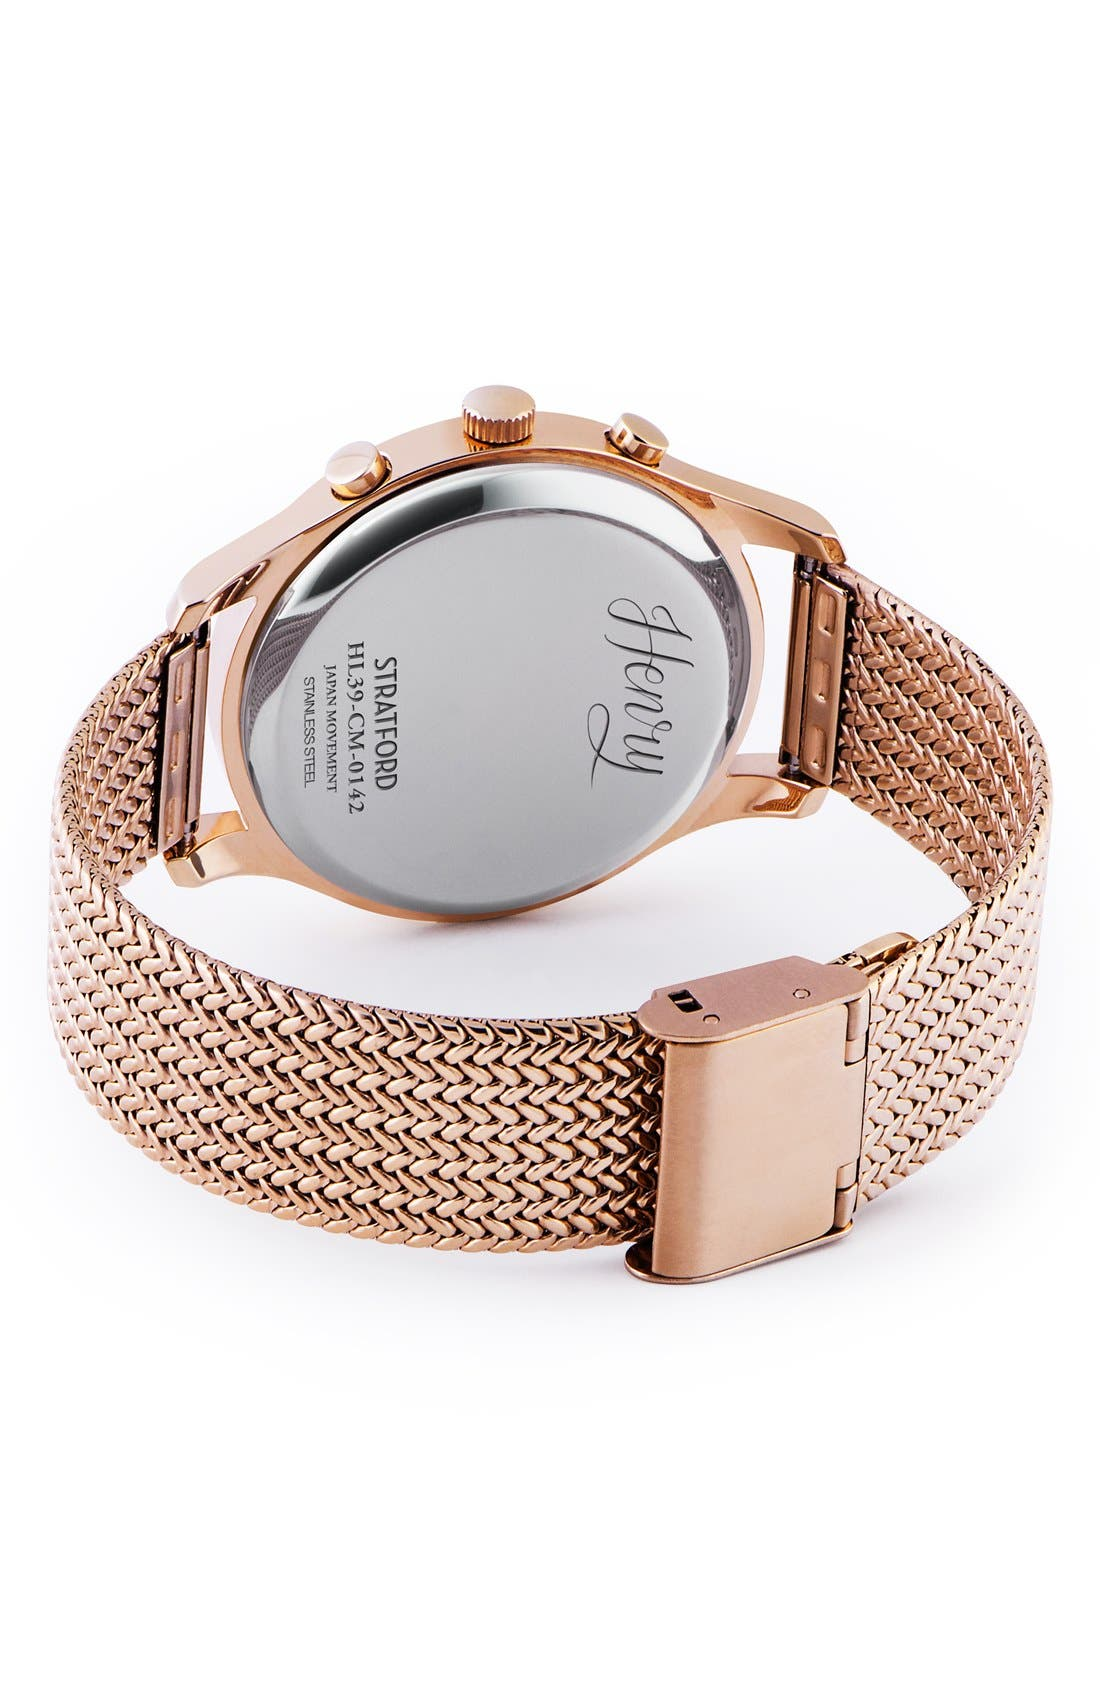 'Stratford' Chronograph Mesh Strap Watch, 38mm,                             Alternate thumbnail 3, color,                             ROSE GOLD/ TEAL